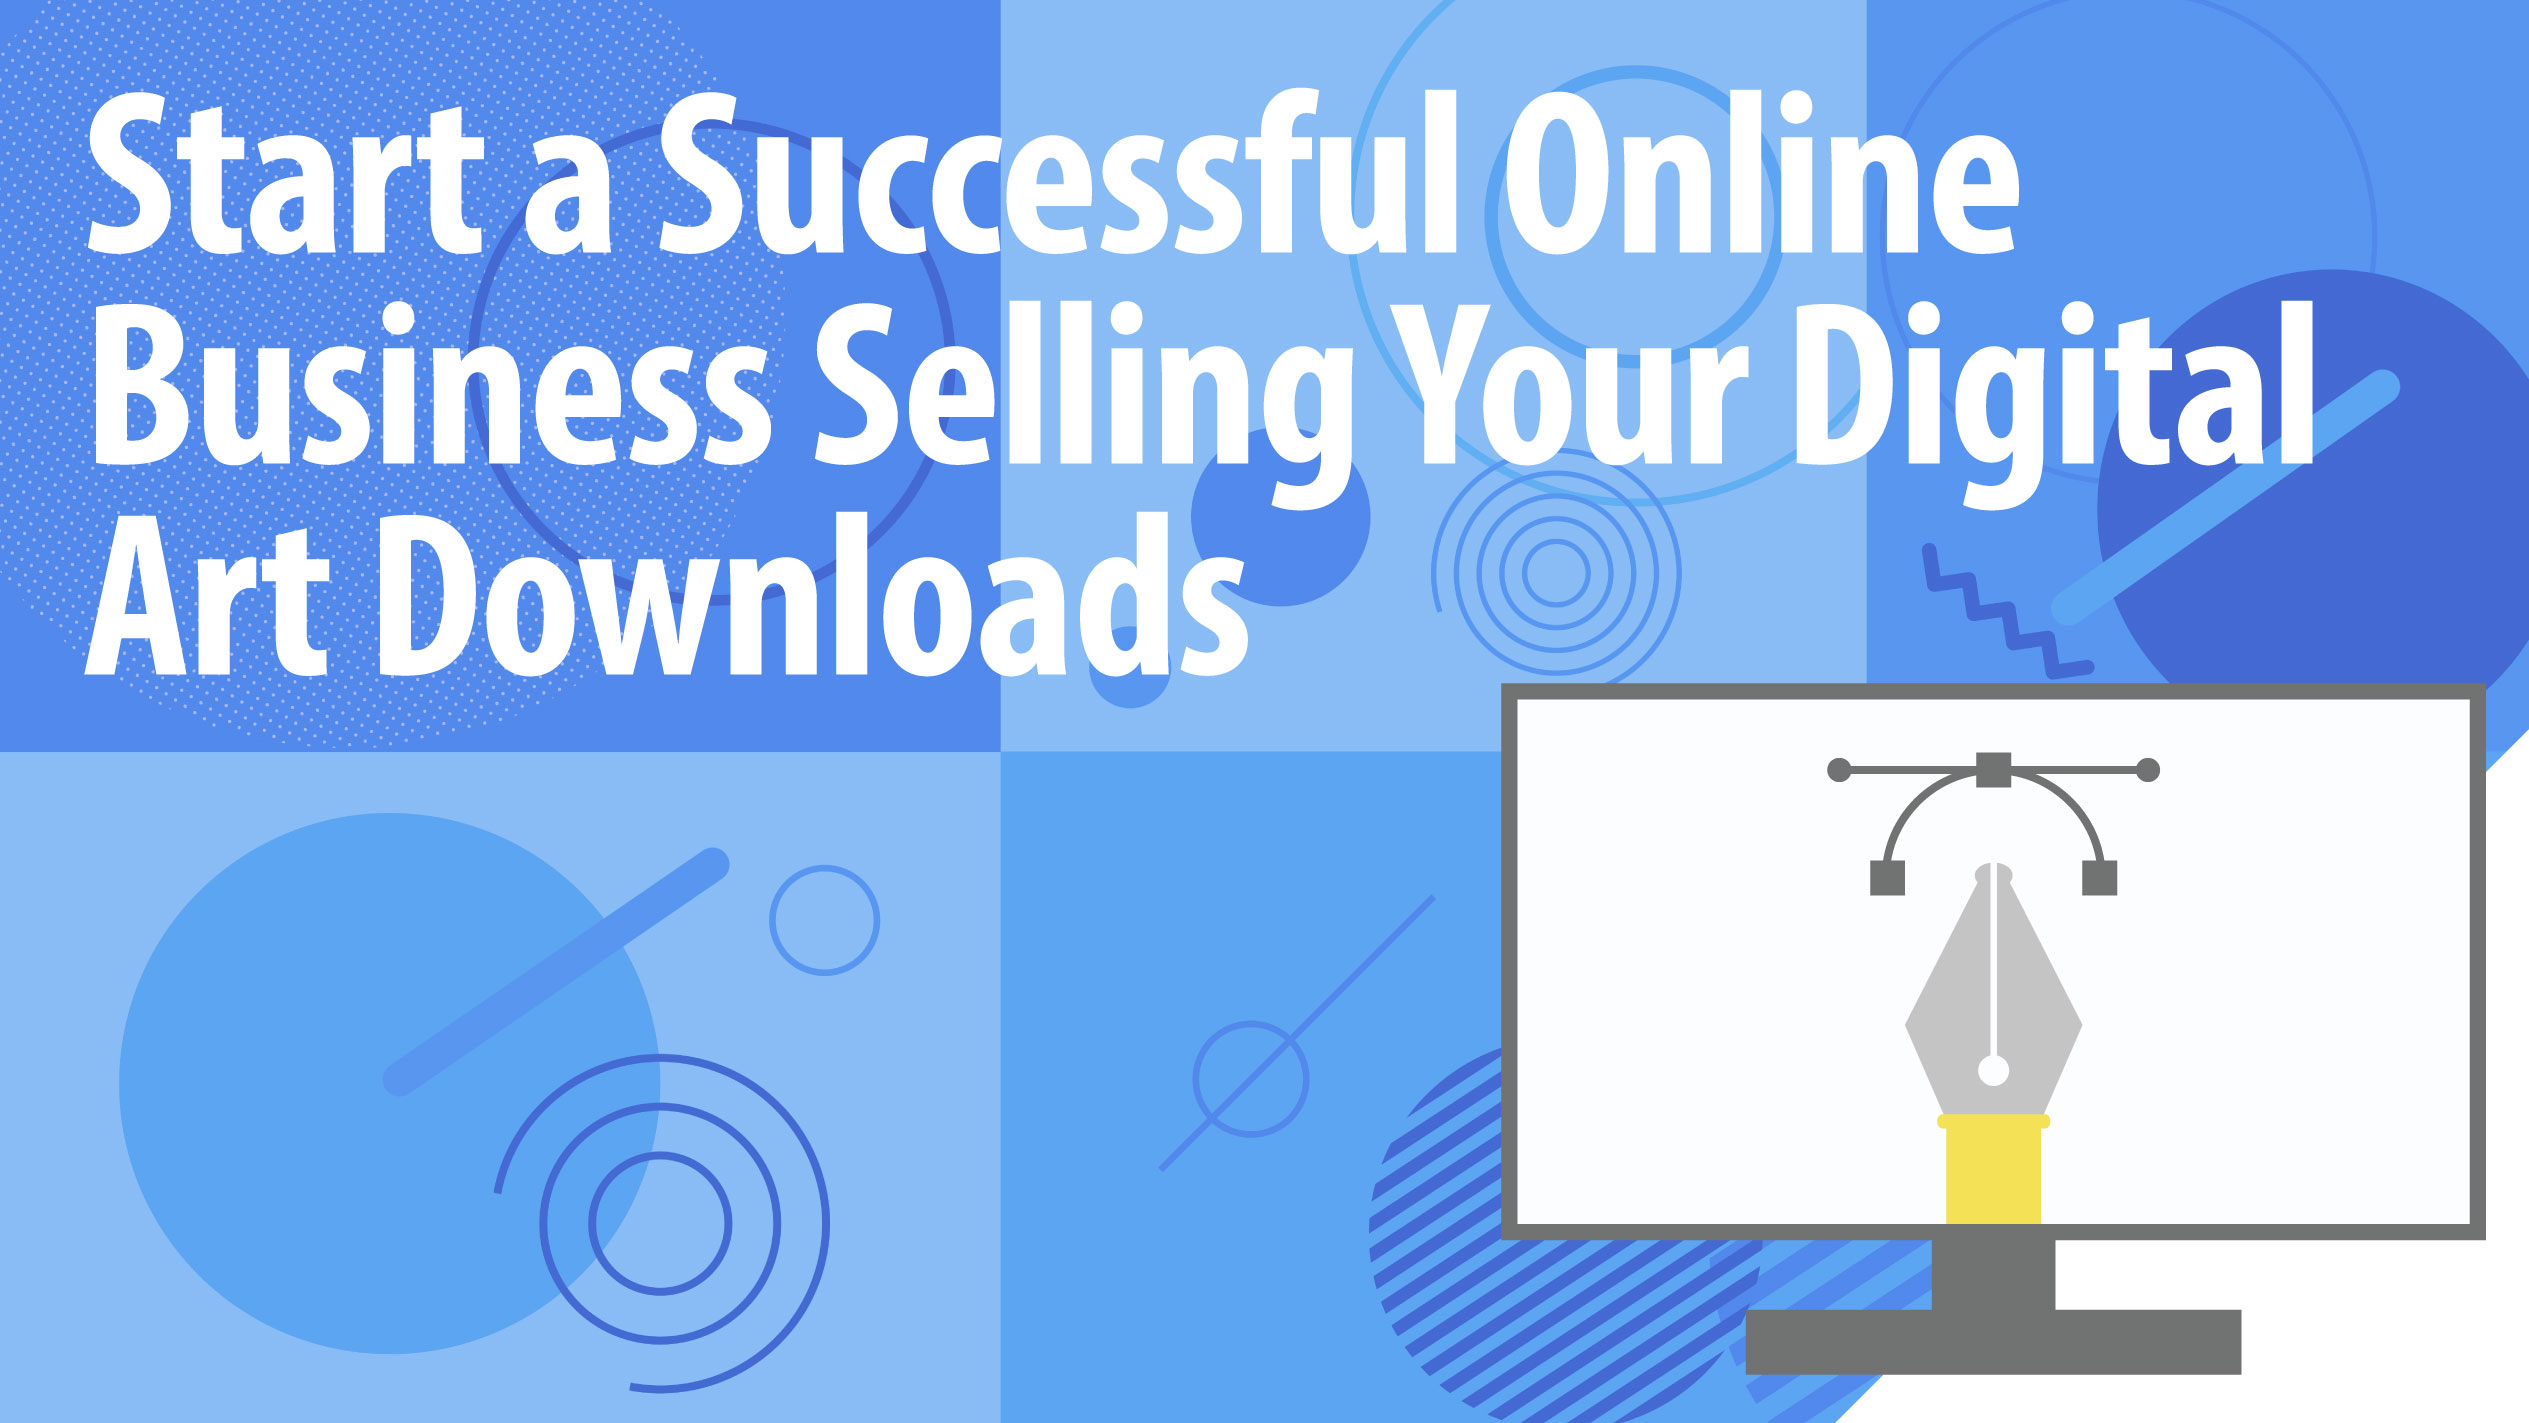 Start a Successful Online Business Selling Your Digital Art Downloads